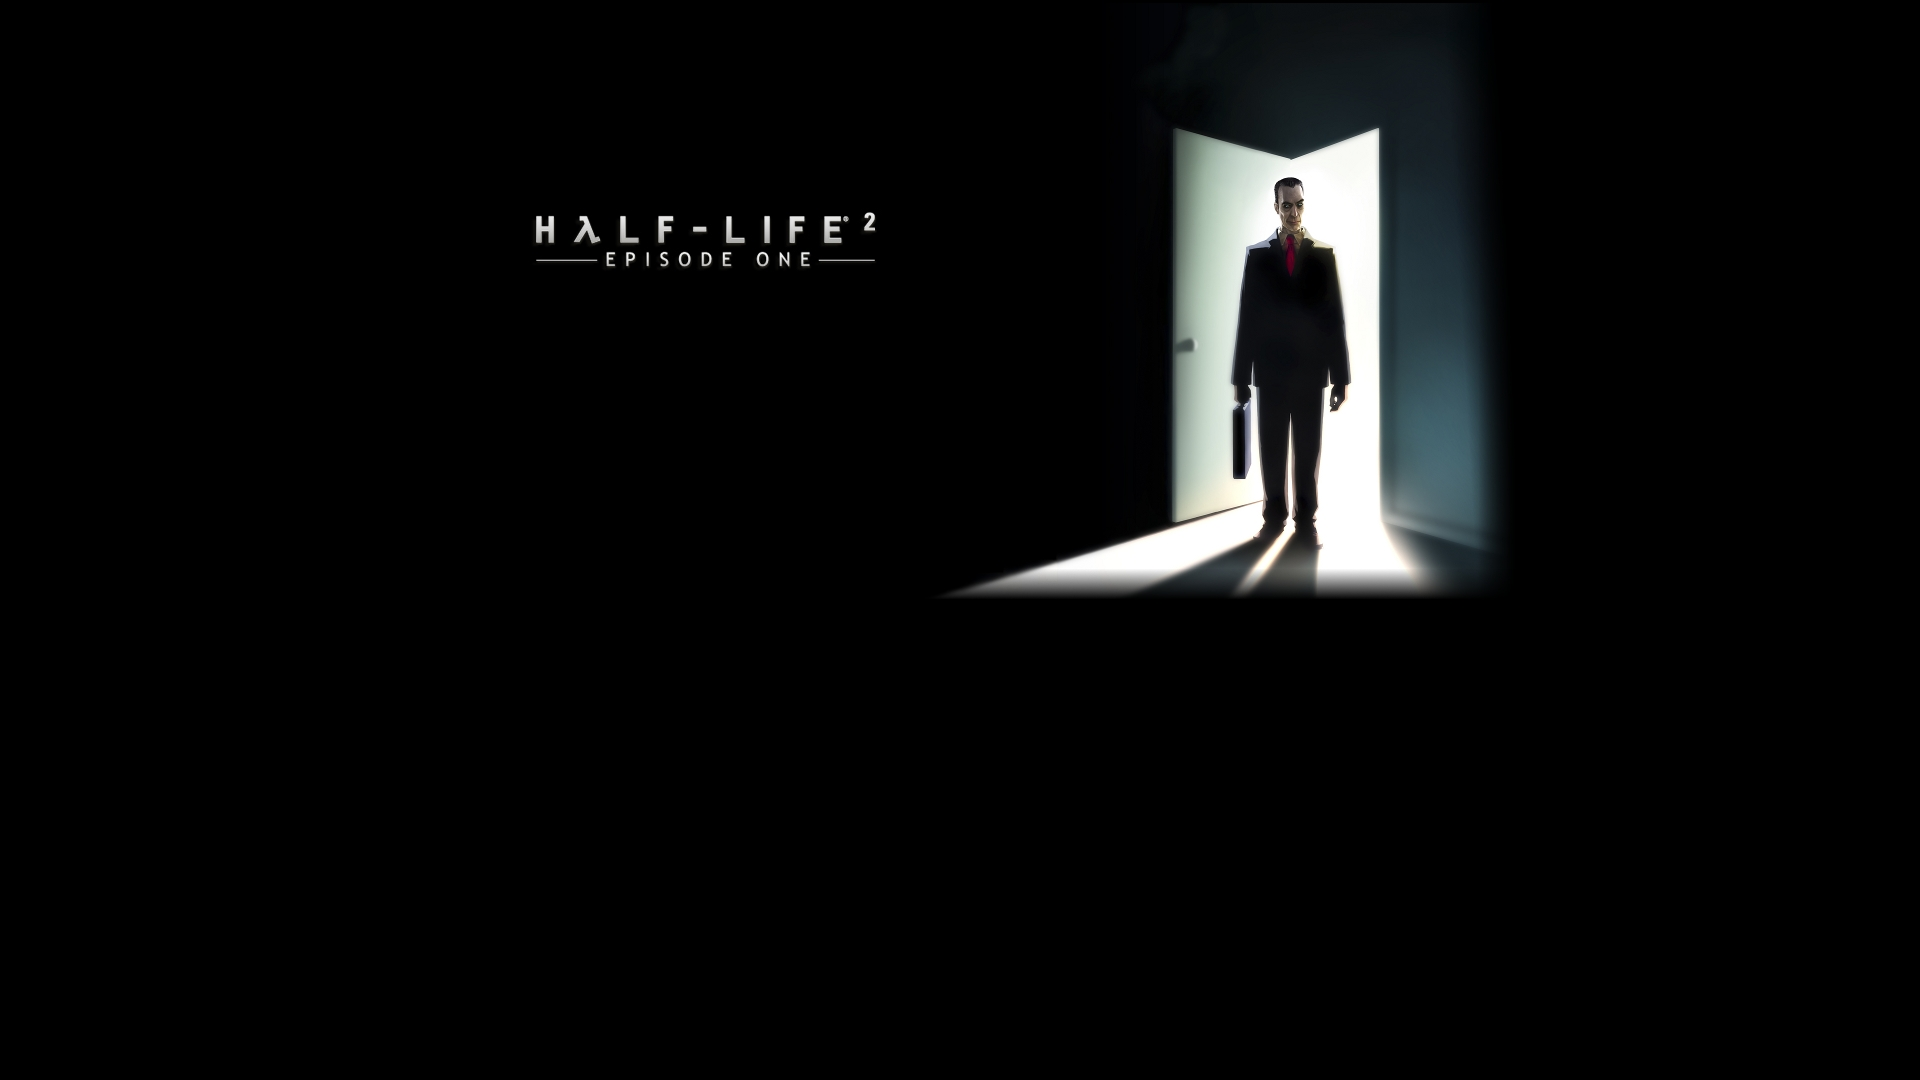 Free Download Half Life 2 Episode One Wallpaper Hd 1920x1080 For